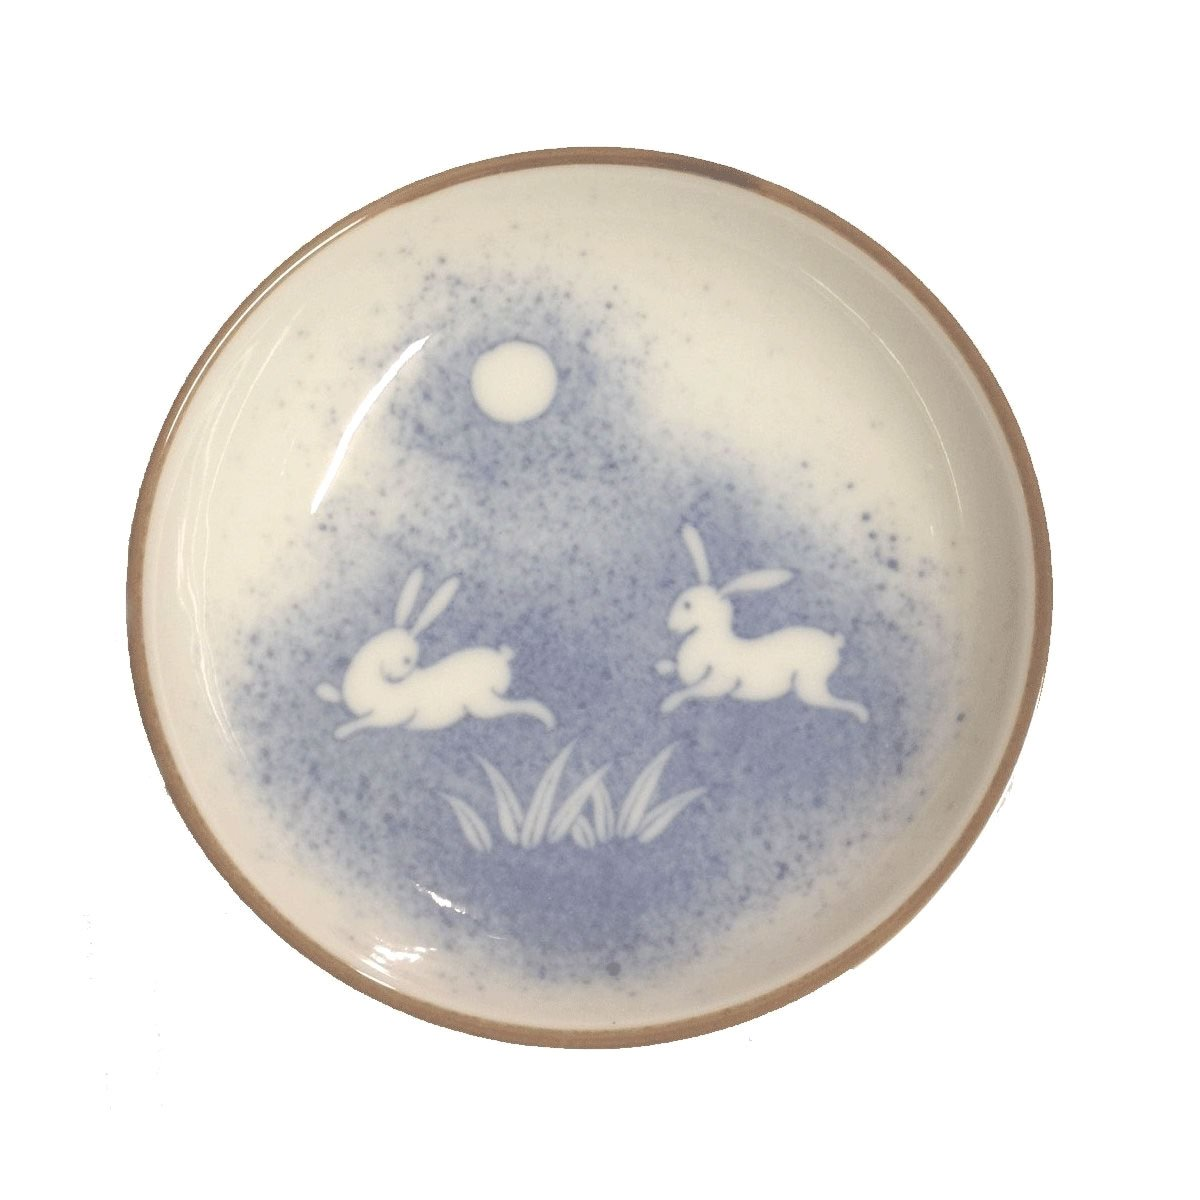 """Japanese 2.75/""""D Sushi Wasabi Soy Sauce Dipping Dishes Bowl Made in Japan 2 PCS"""